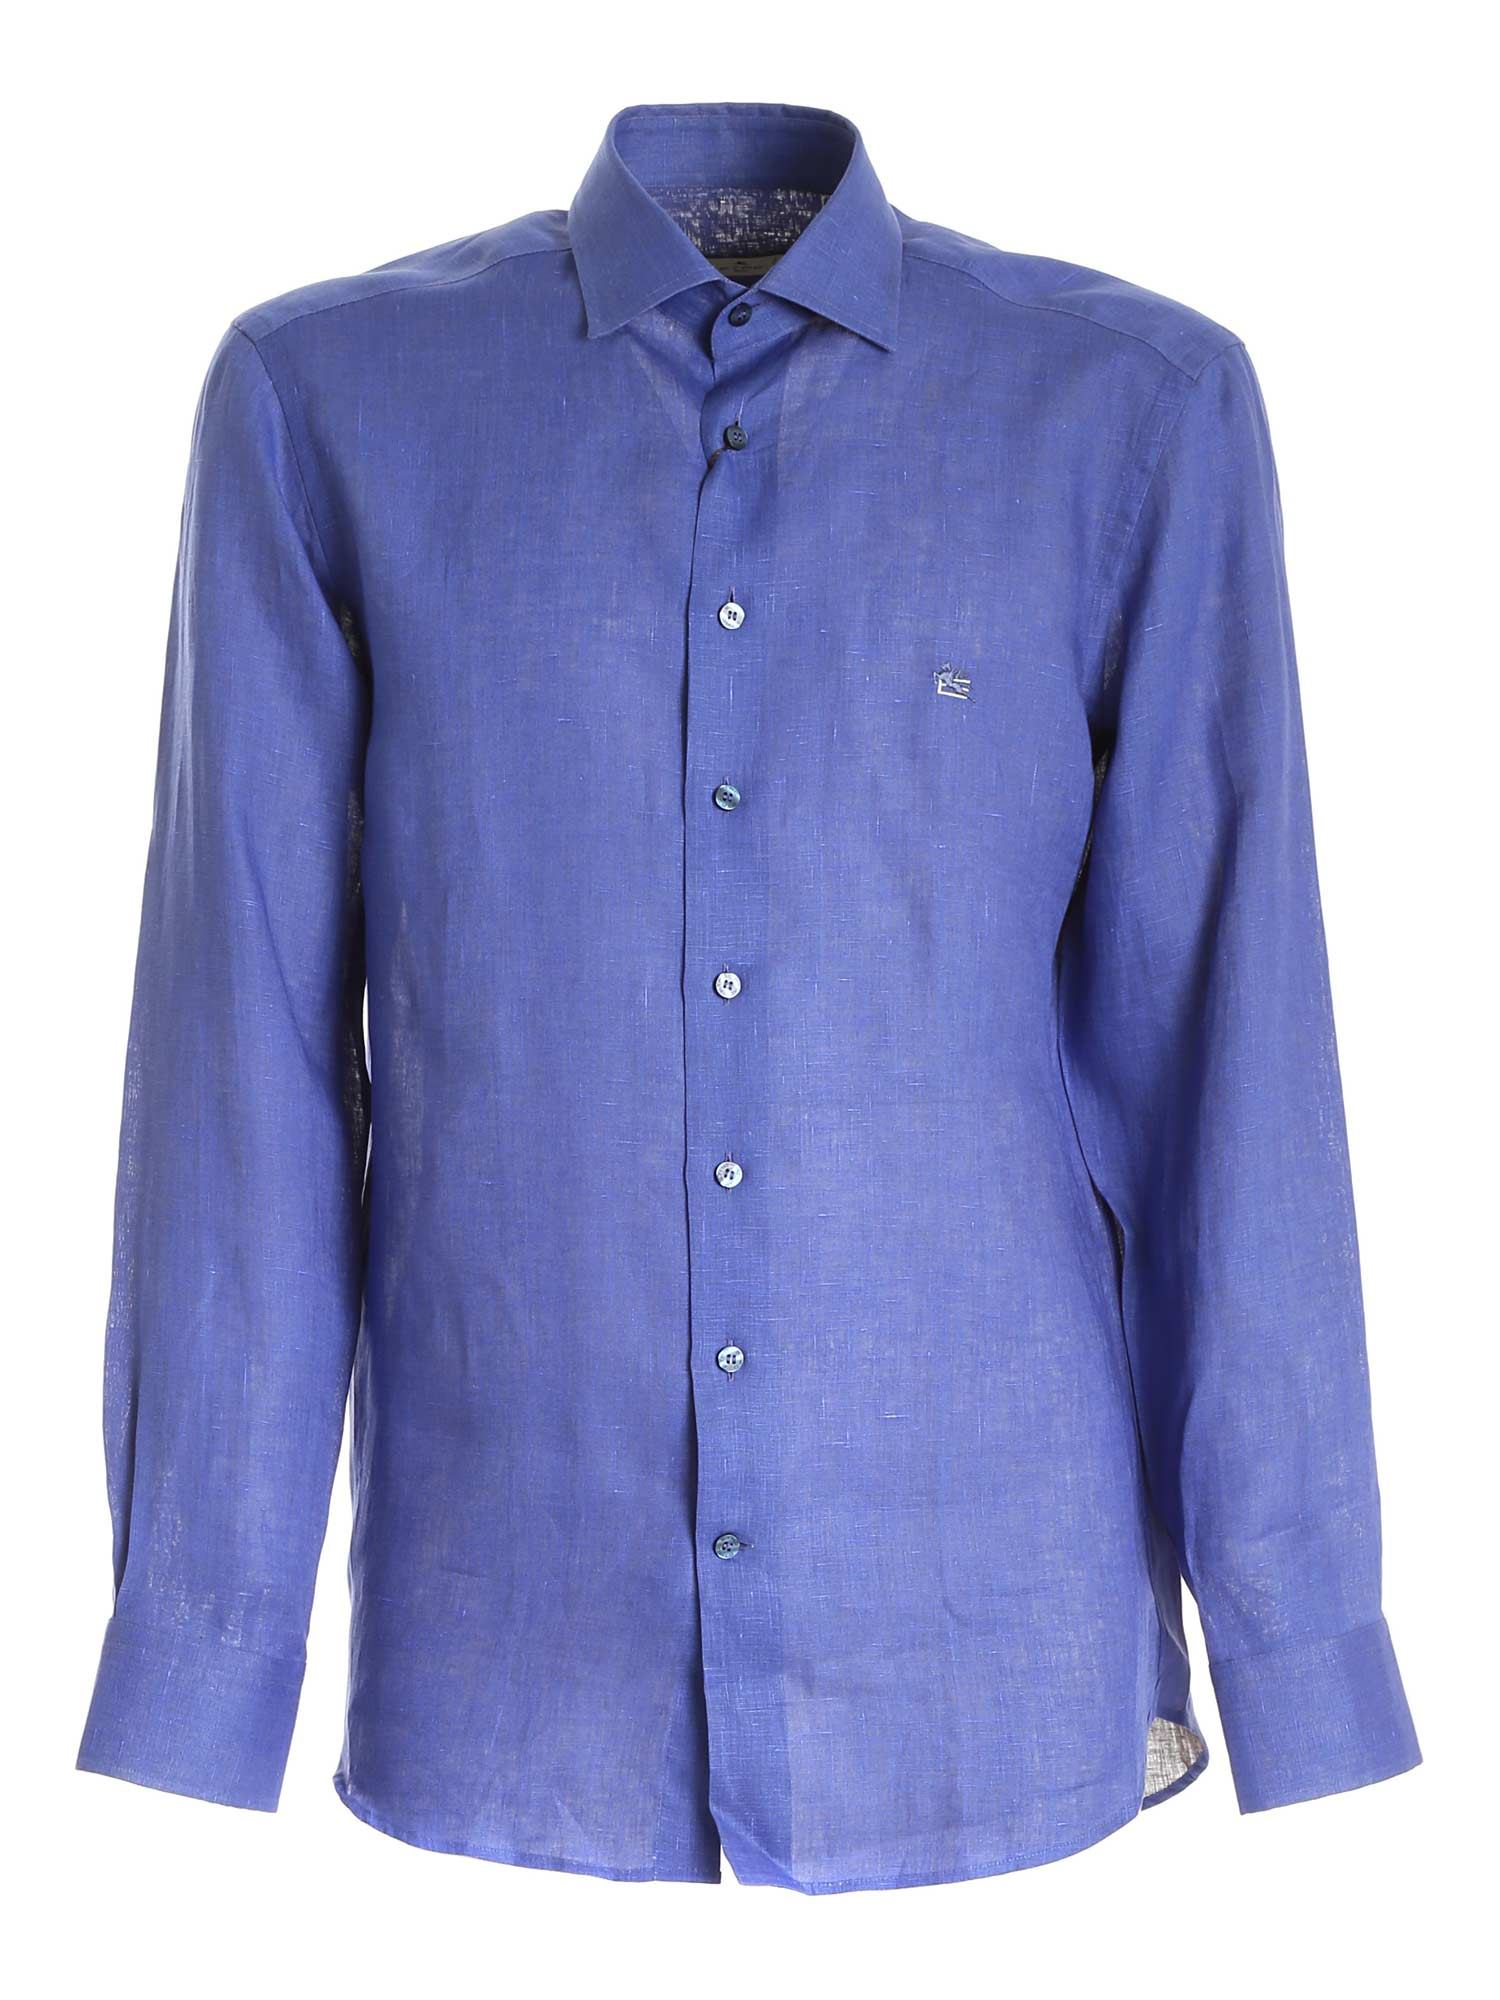 Etro LOGO EMBROIDERY SHIRT IN BLUE